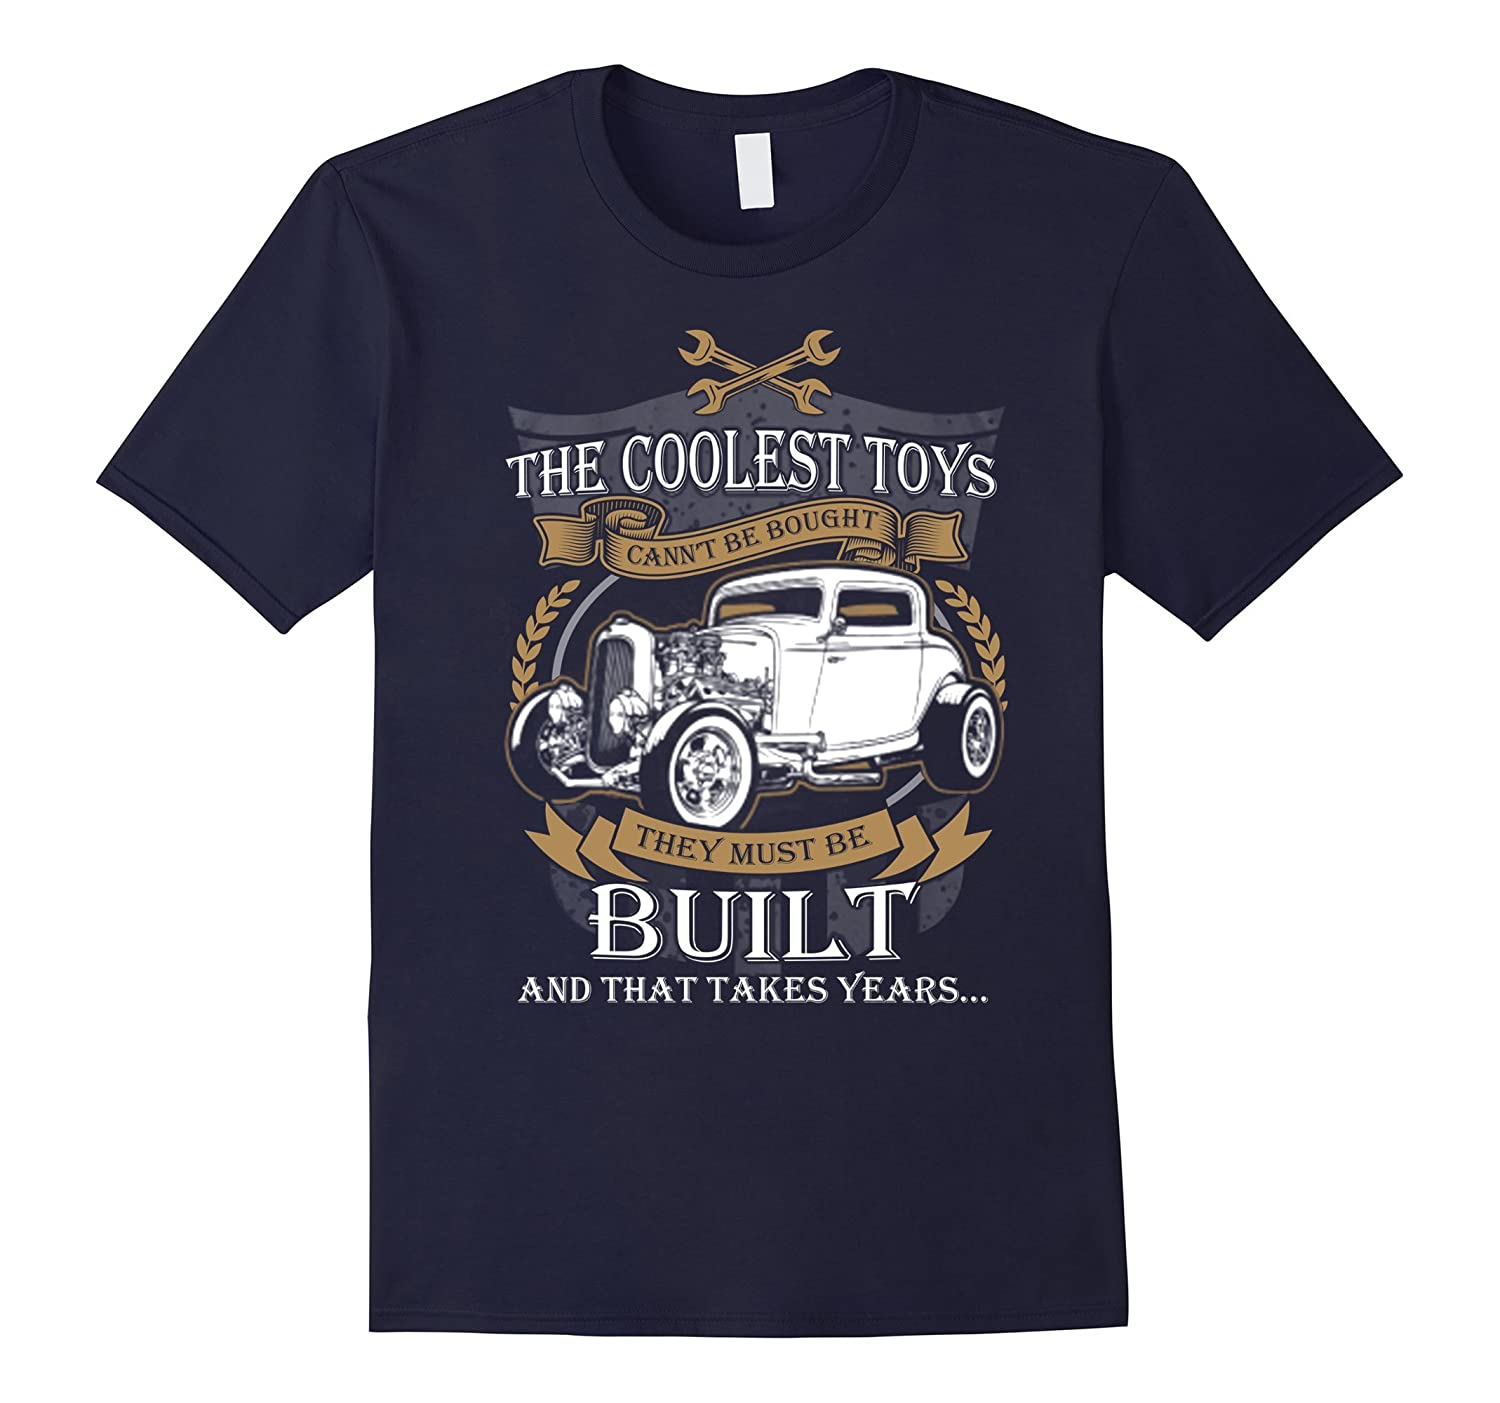 The Coolest Toys Cann't Be Bought - Hot Rod T-shirt-Art